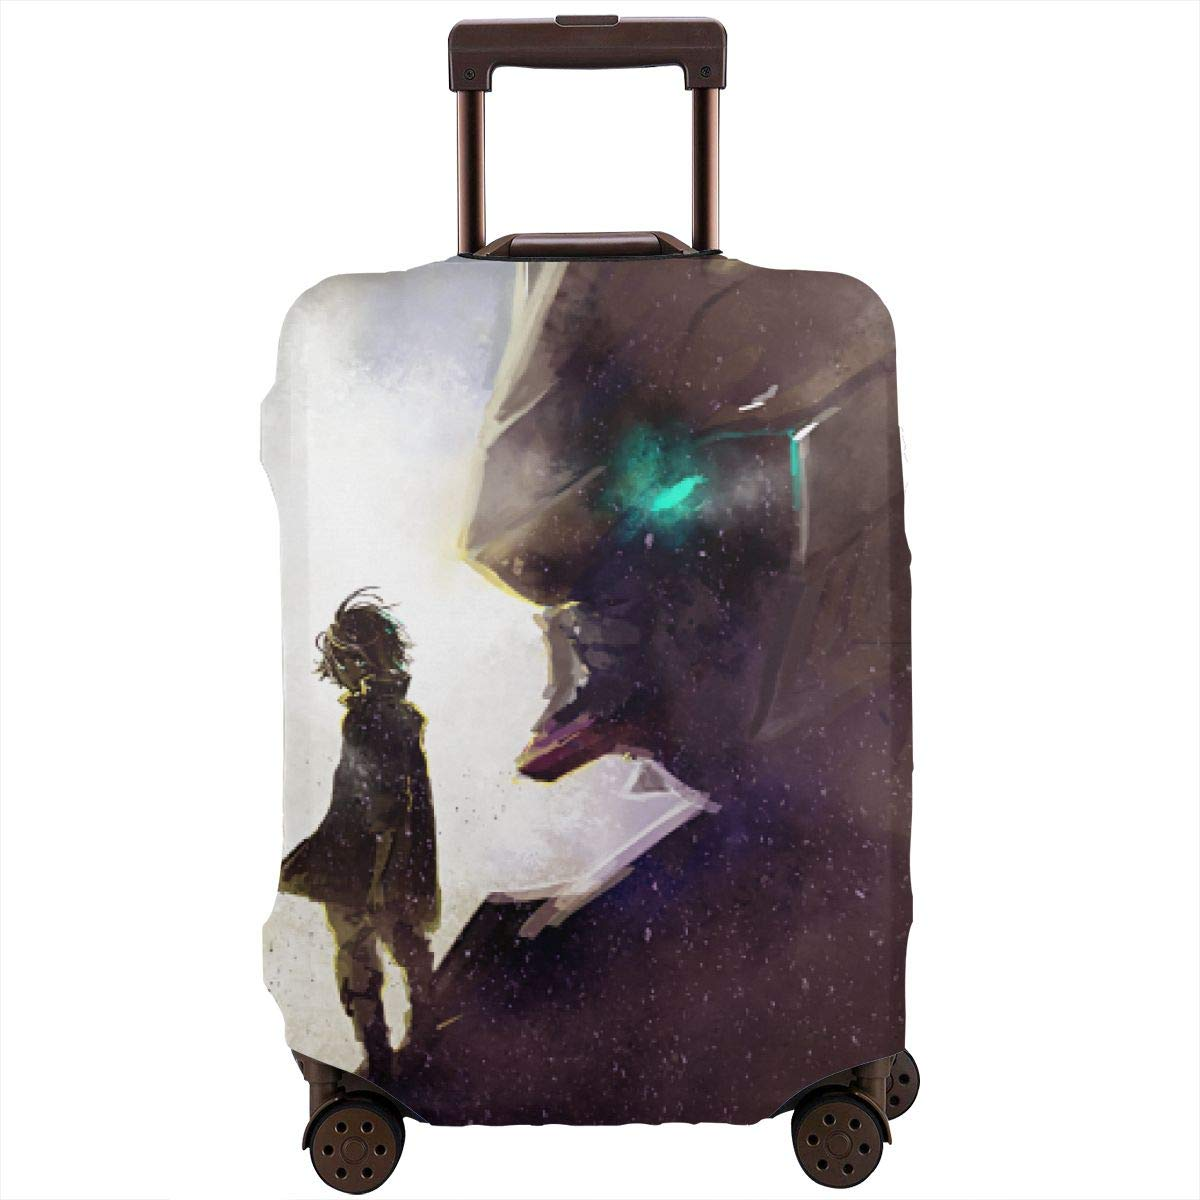 Washable Spandex Luggage Bag Cover Protector Fits 29-32 Inch Suitcase Sleeve Movie Night Print Design